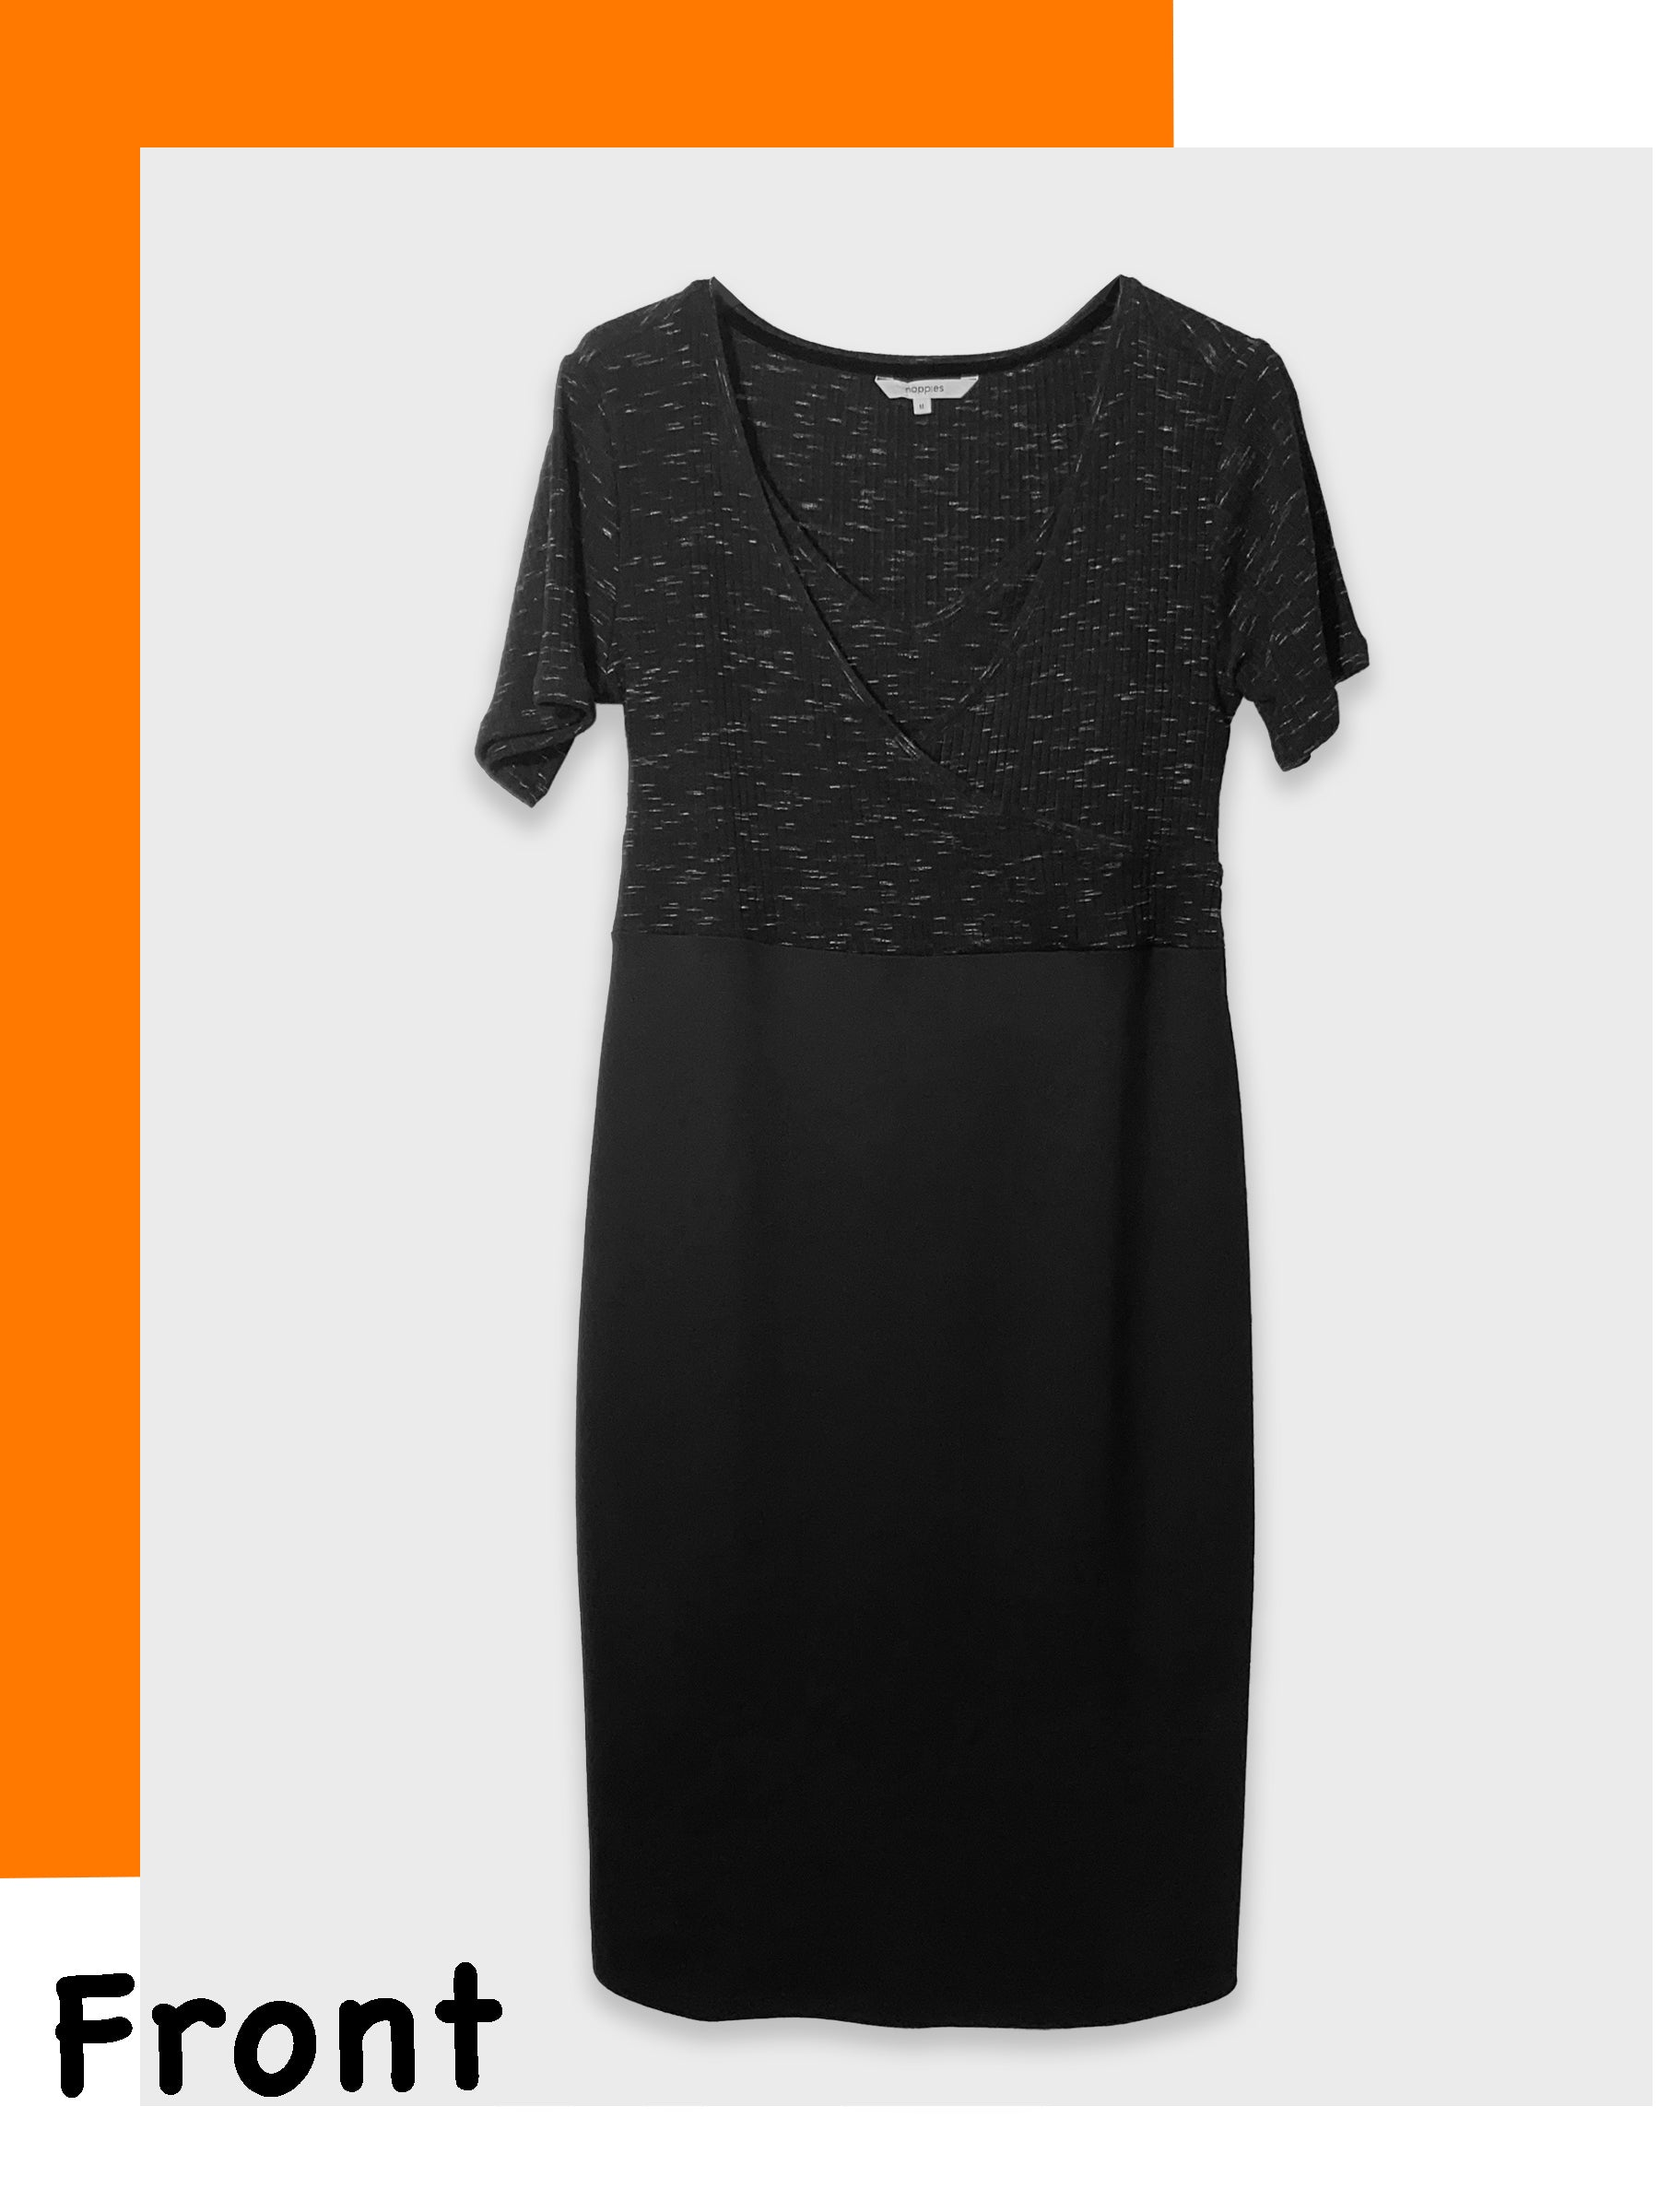 Maternity Dress with Discreet Nursing Access